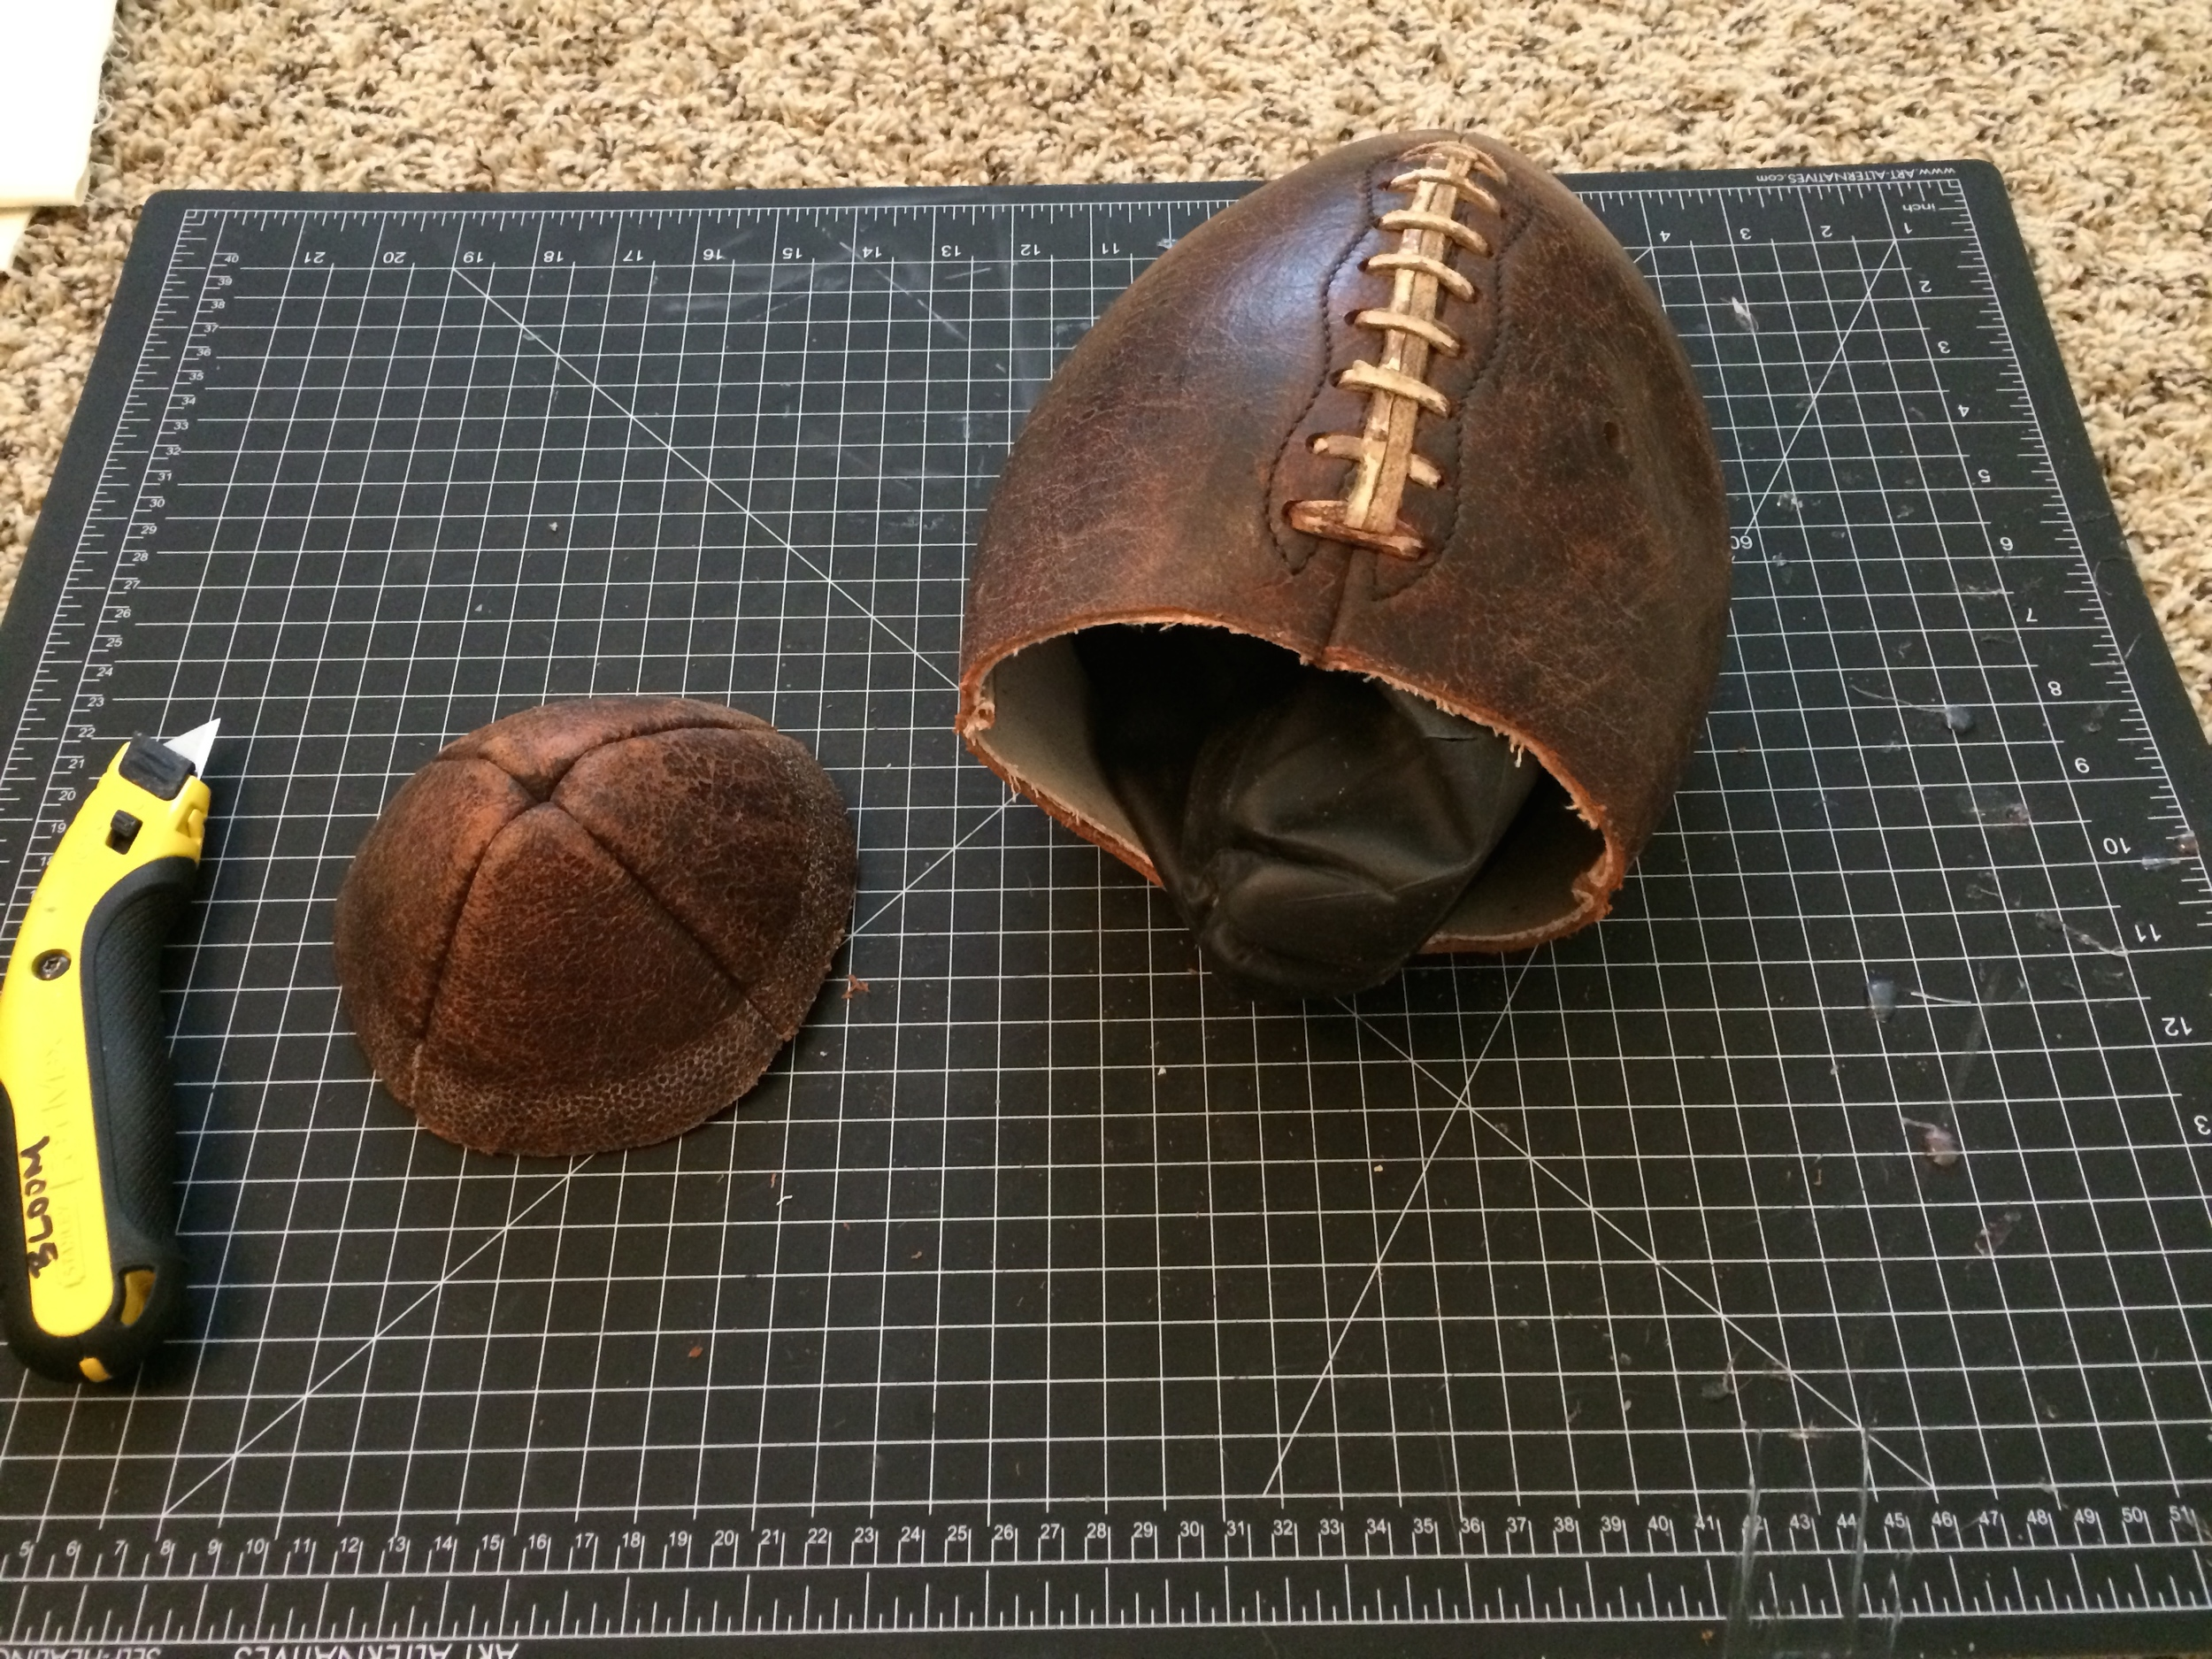 Initial cut into the football